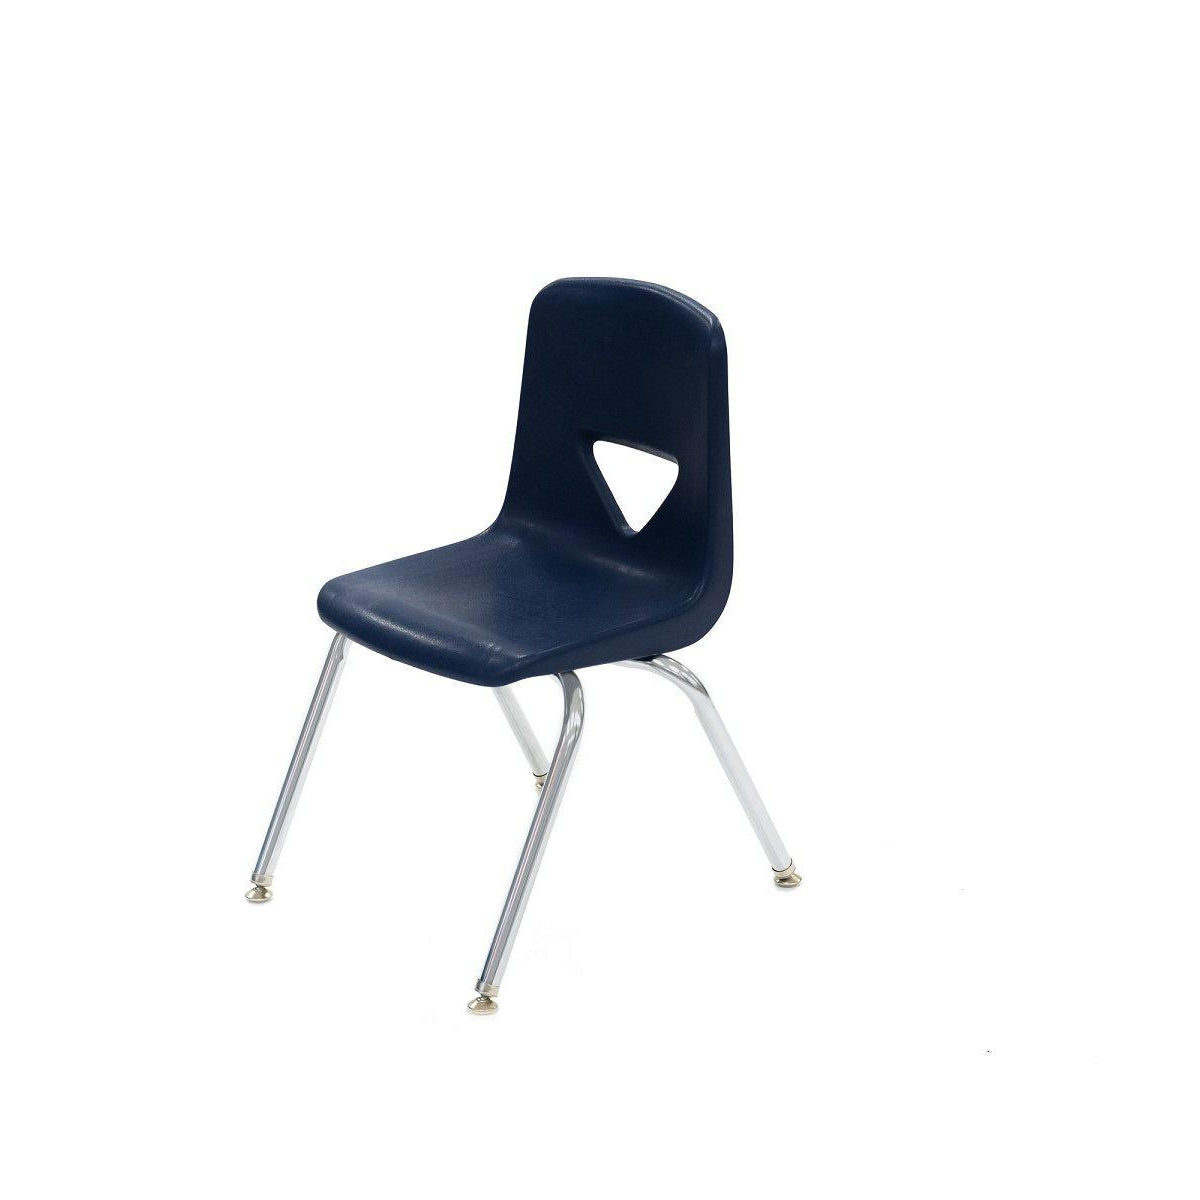 "120 Series Stacking Chair, 9-1/2"" Seat Height"